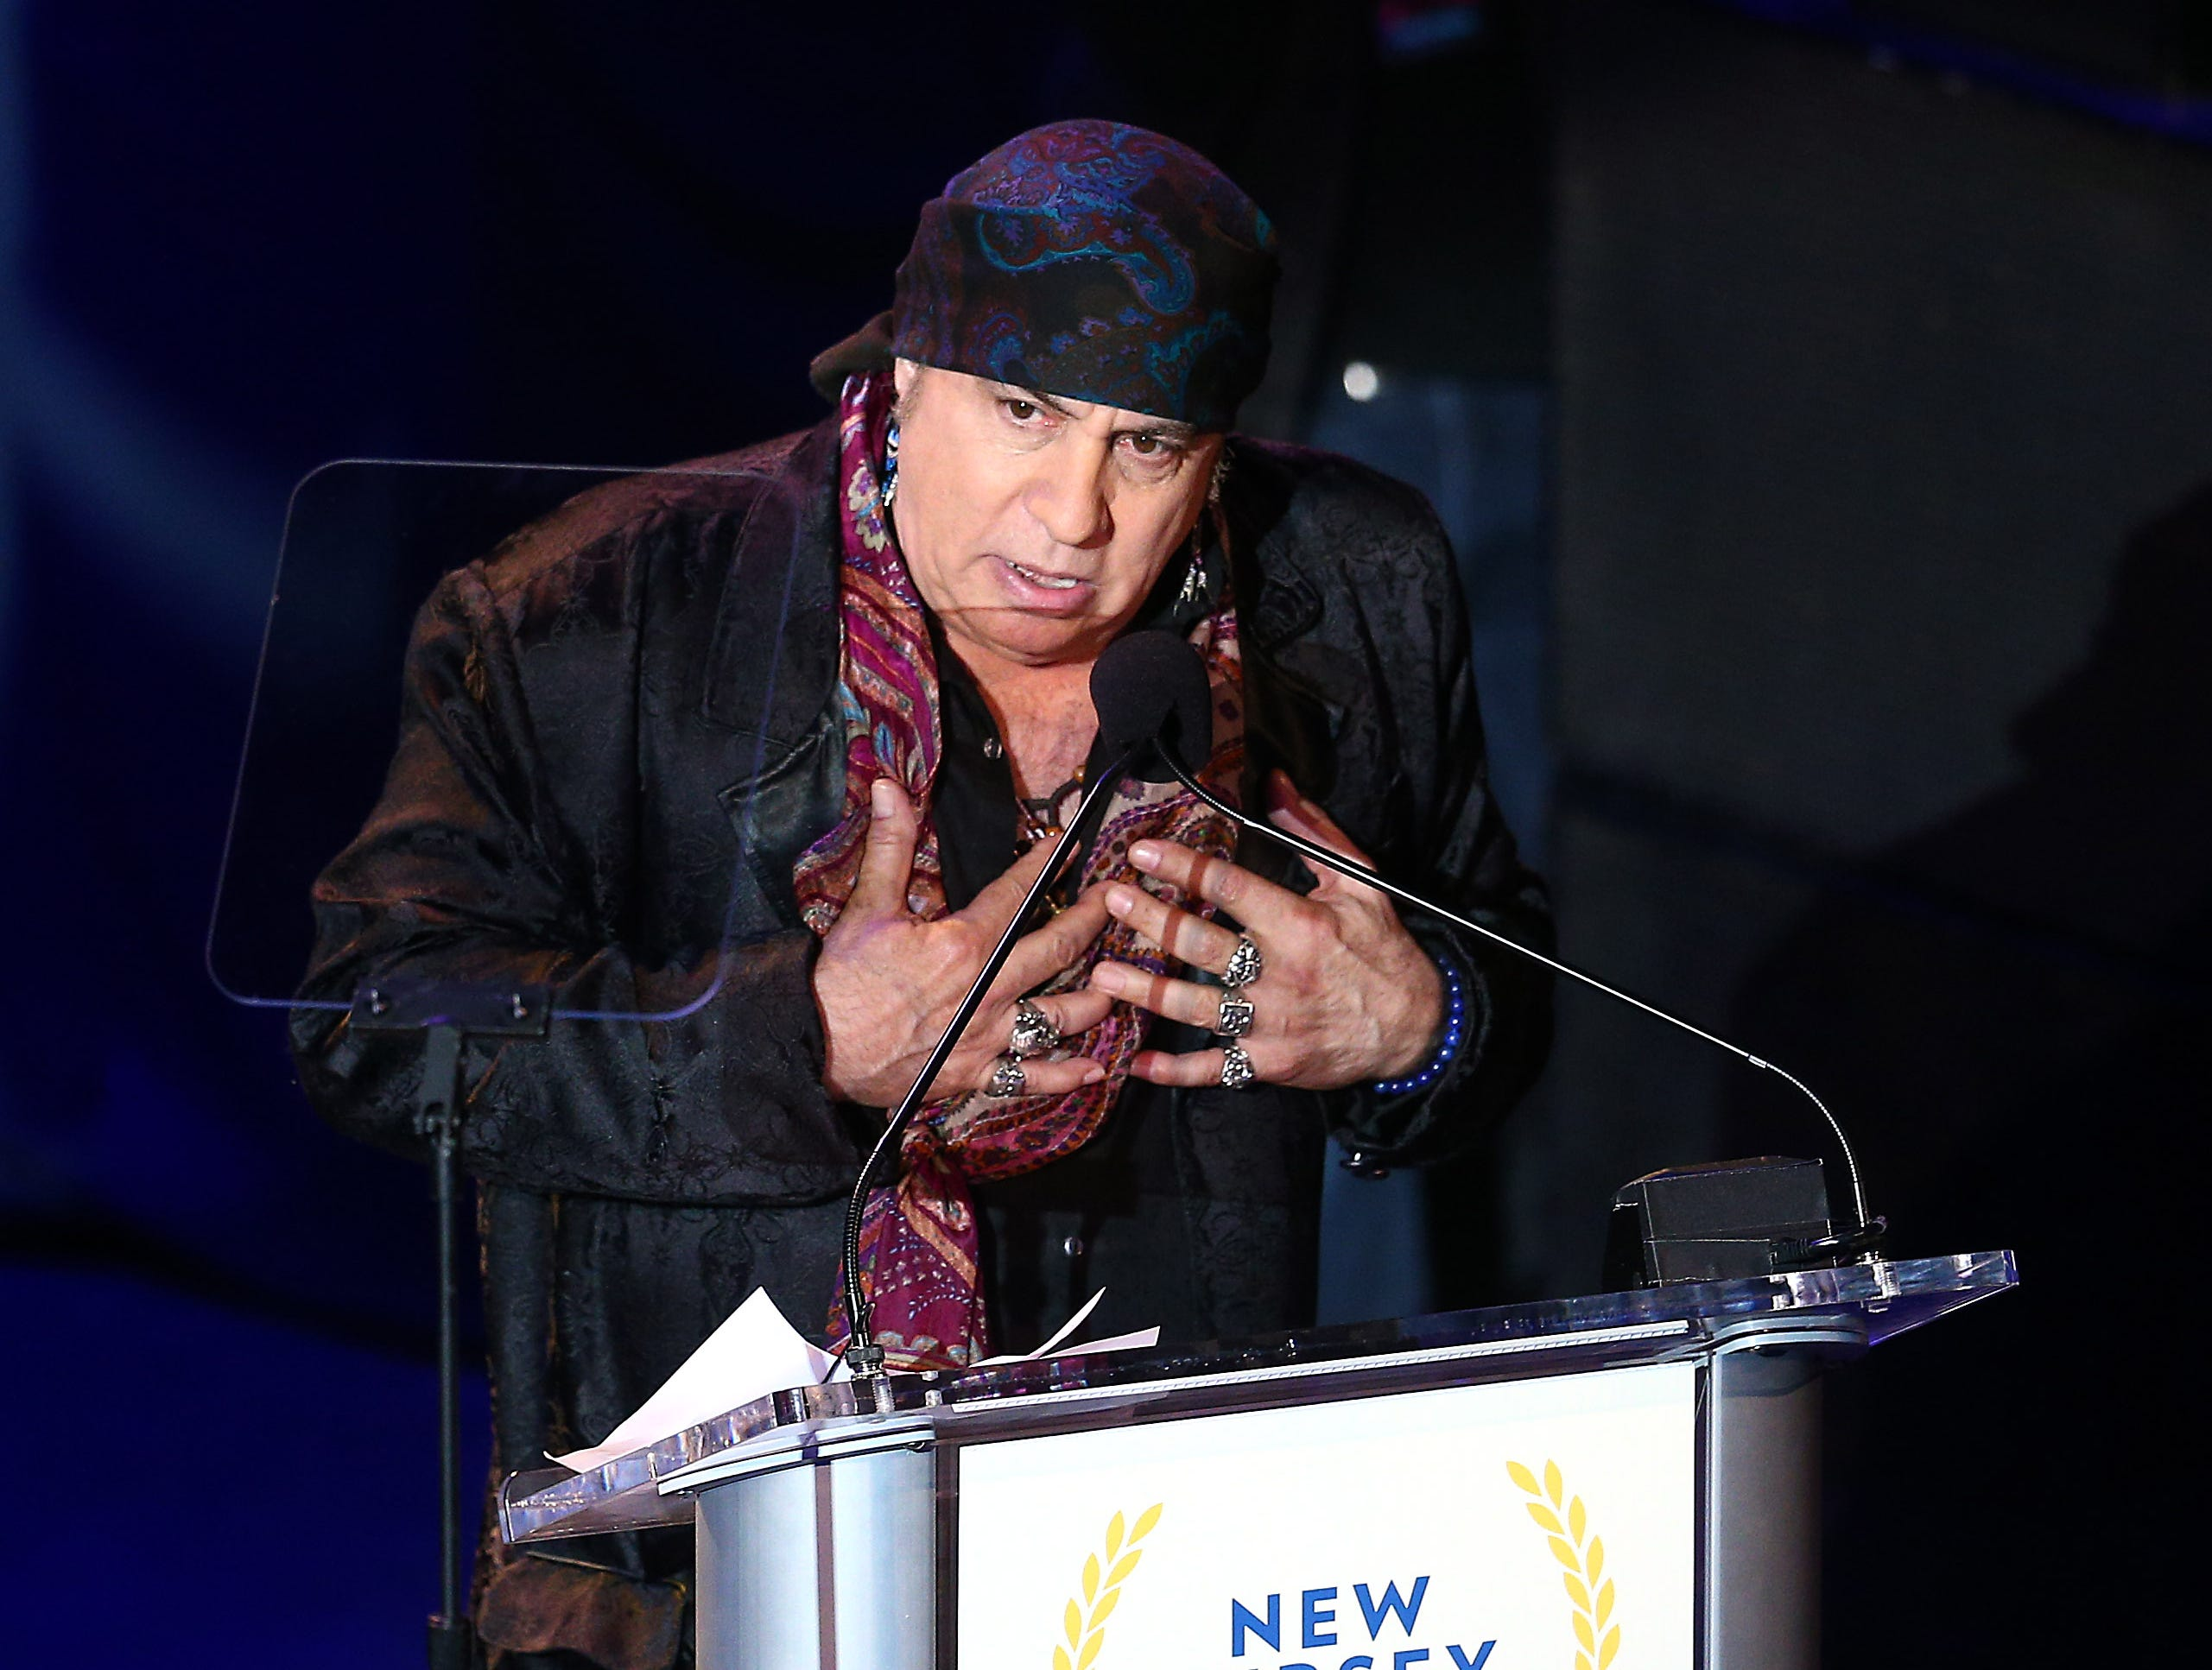 Musician and actor Steven Van Zandt gives thanks after receiving his Performing Arts award from Bruce Springsteen during the 10th Anniversary Induction Ceremony of the New Jersey Hall of Fame at the Paramount Theater in Convention Hall, Asbury Park. May 6, 2018. Asbury Park, NJ